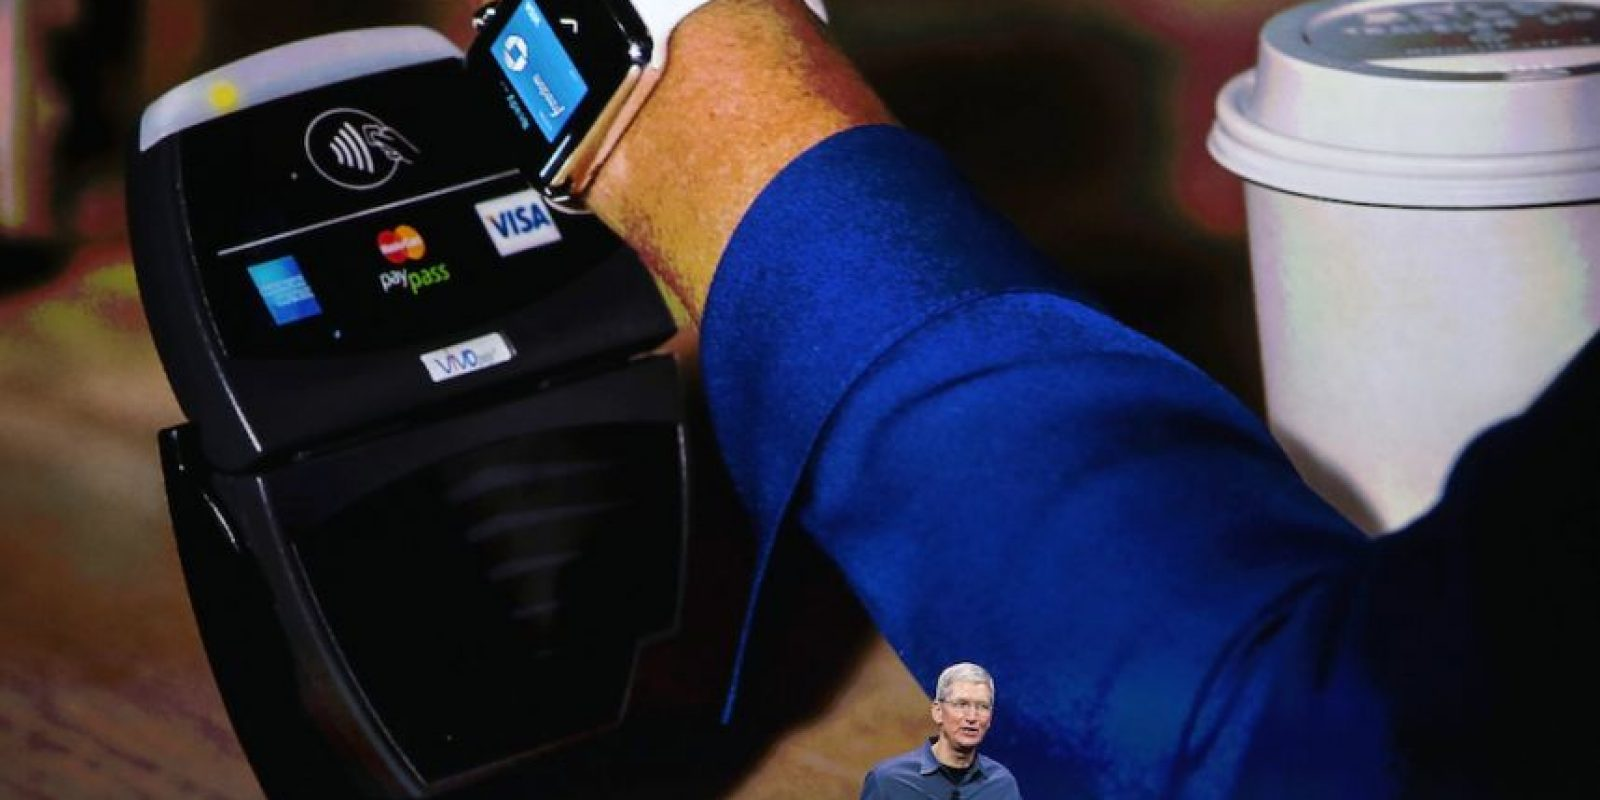 Compatible con Apple Pay. Foto: Getty Images